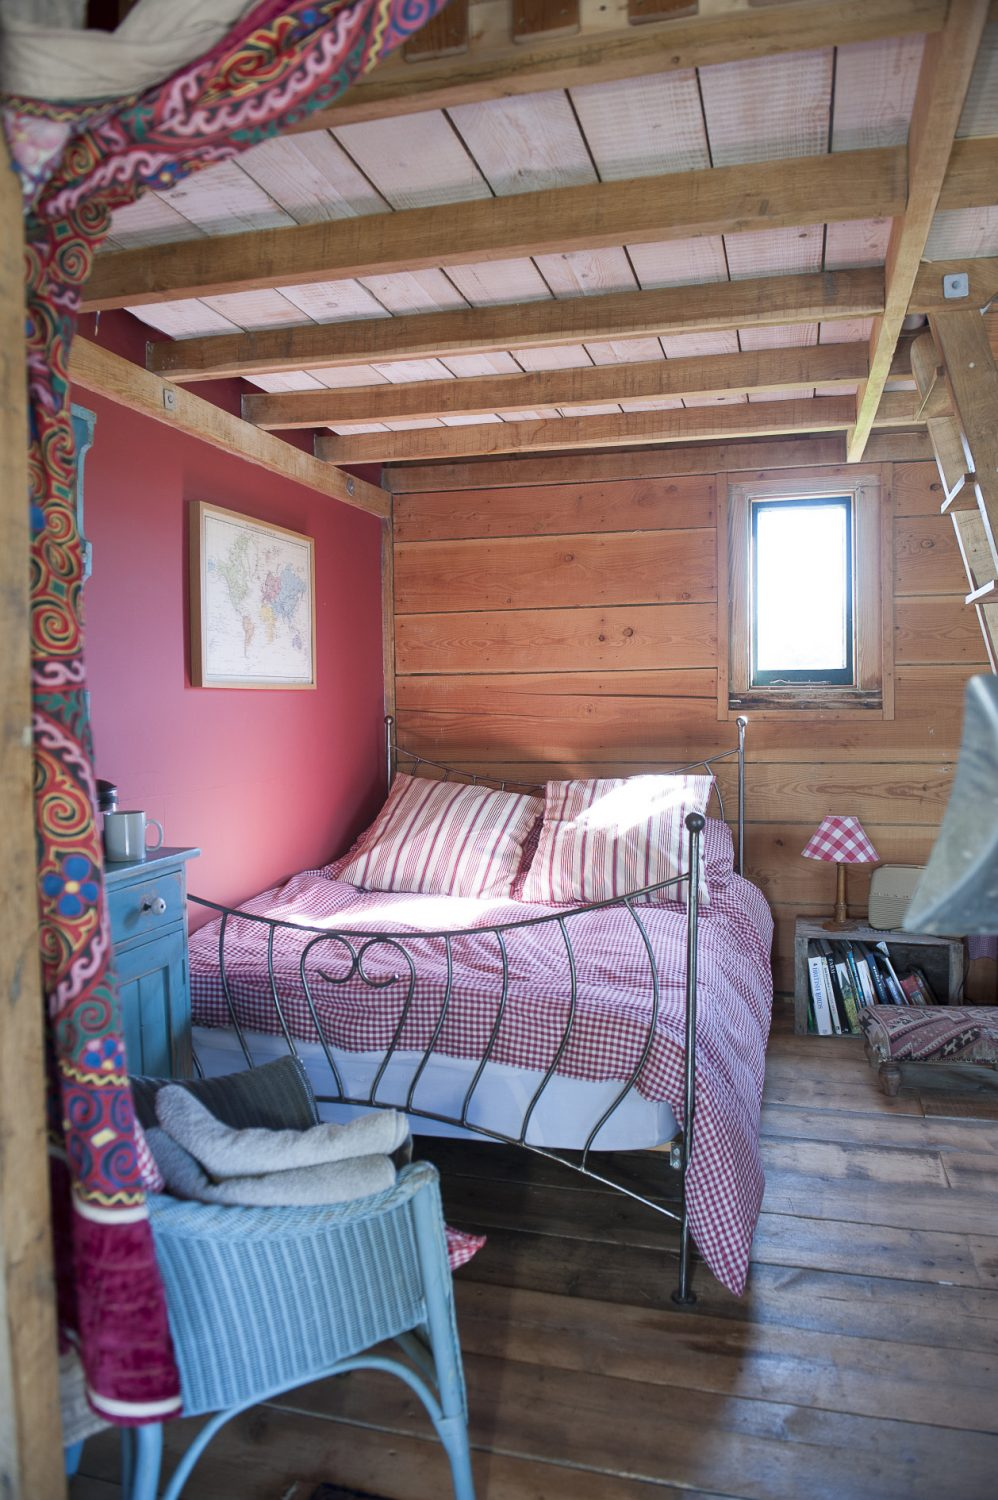 A double bed in the lakeside shack looks over the fishing pond and paddocks containing geese, sheep and, in the far corner, pigs. There is departure from Caroline's muted colour scheme in the shack, which features warm tones on the walls and furnishings